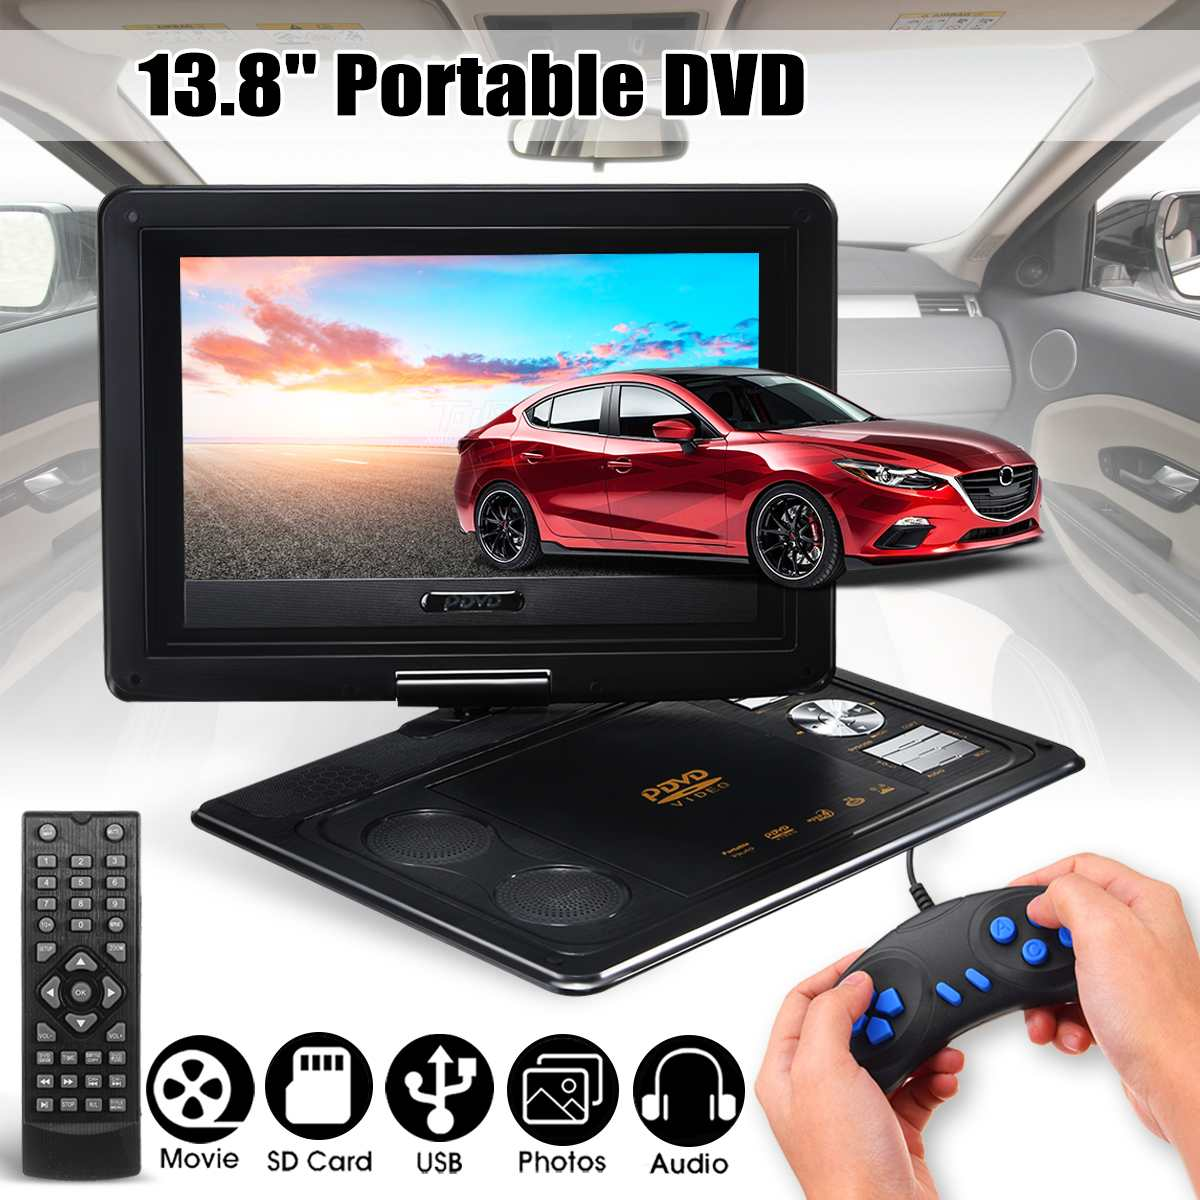 13.8inch Portable DVD Player Car TV CD Digital Multimedia Player Rotate USB SD Support Game Function With Gamepad Car Charger13.8inch Portable DVD Player Car TV CD Digital Multimedia Player Rotate USB SD Support Game Function With Gamepad Car Charger